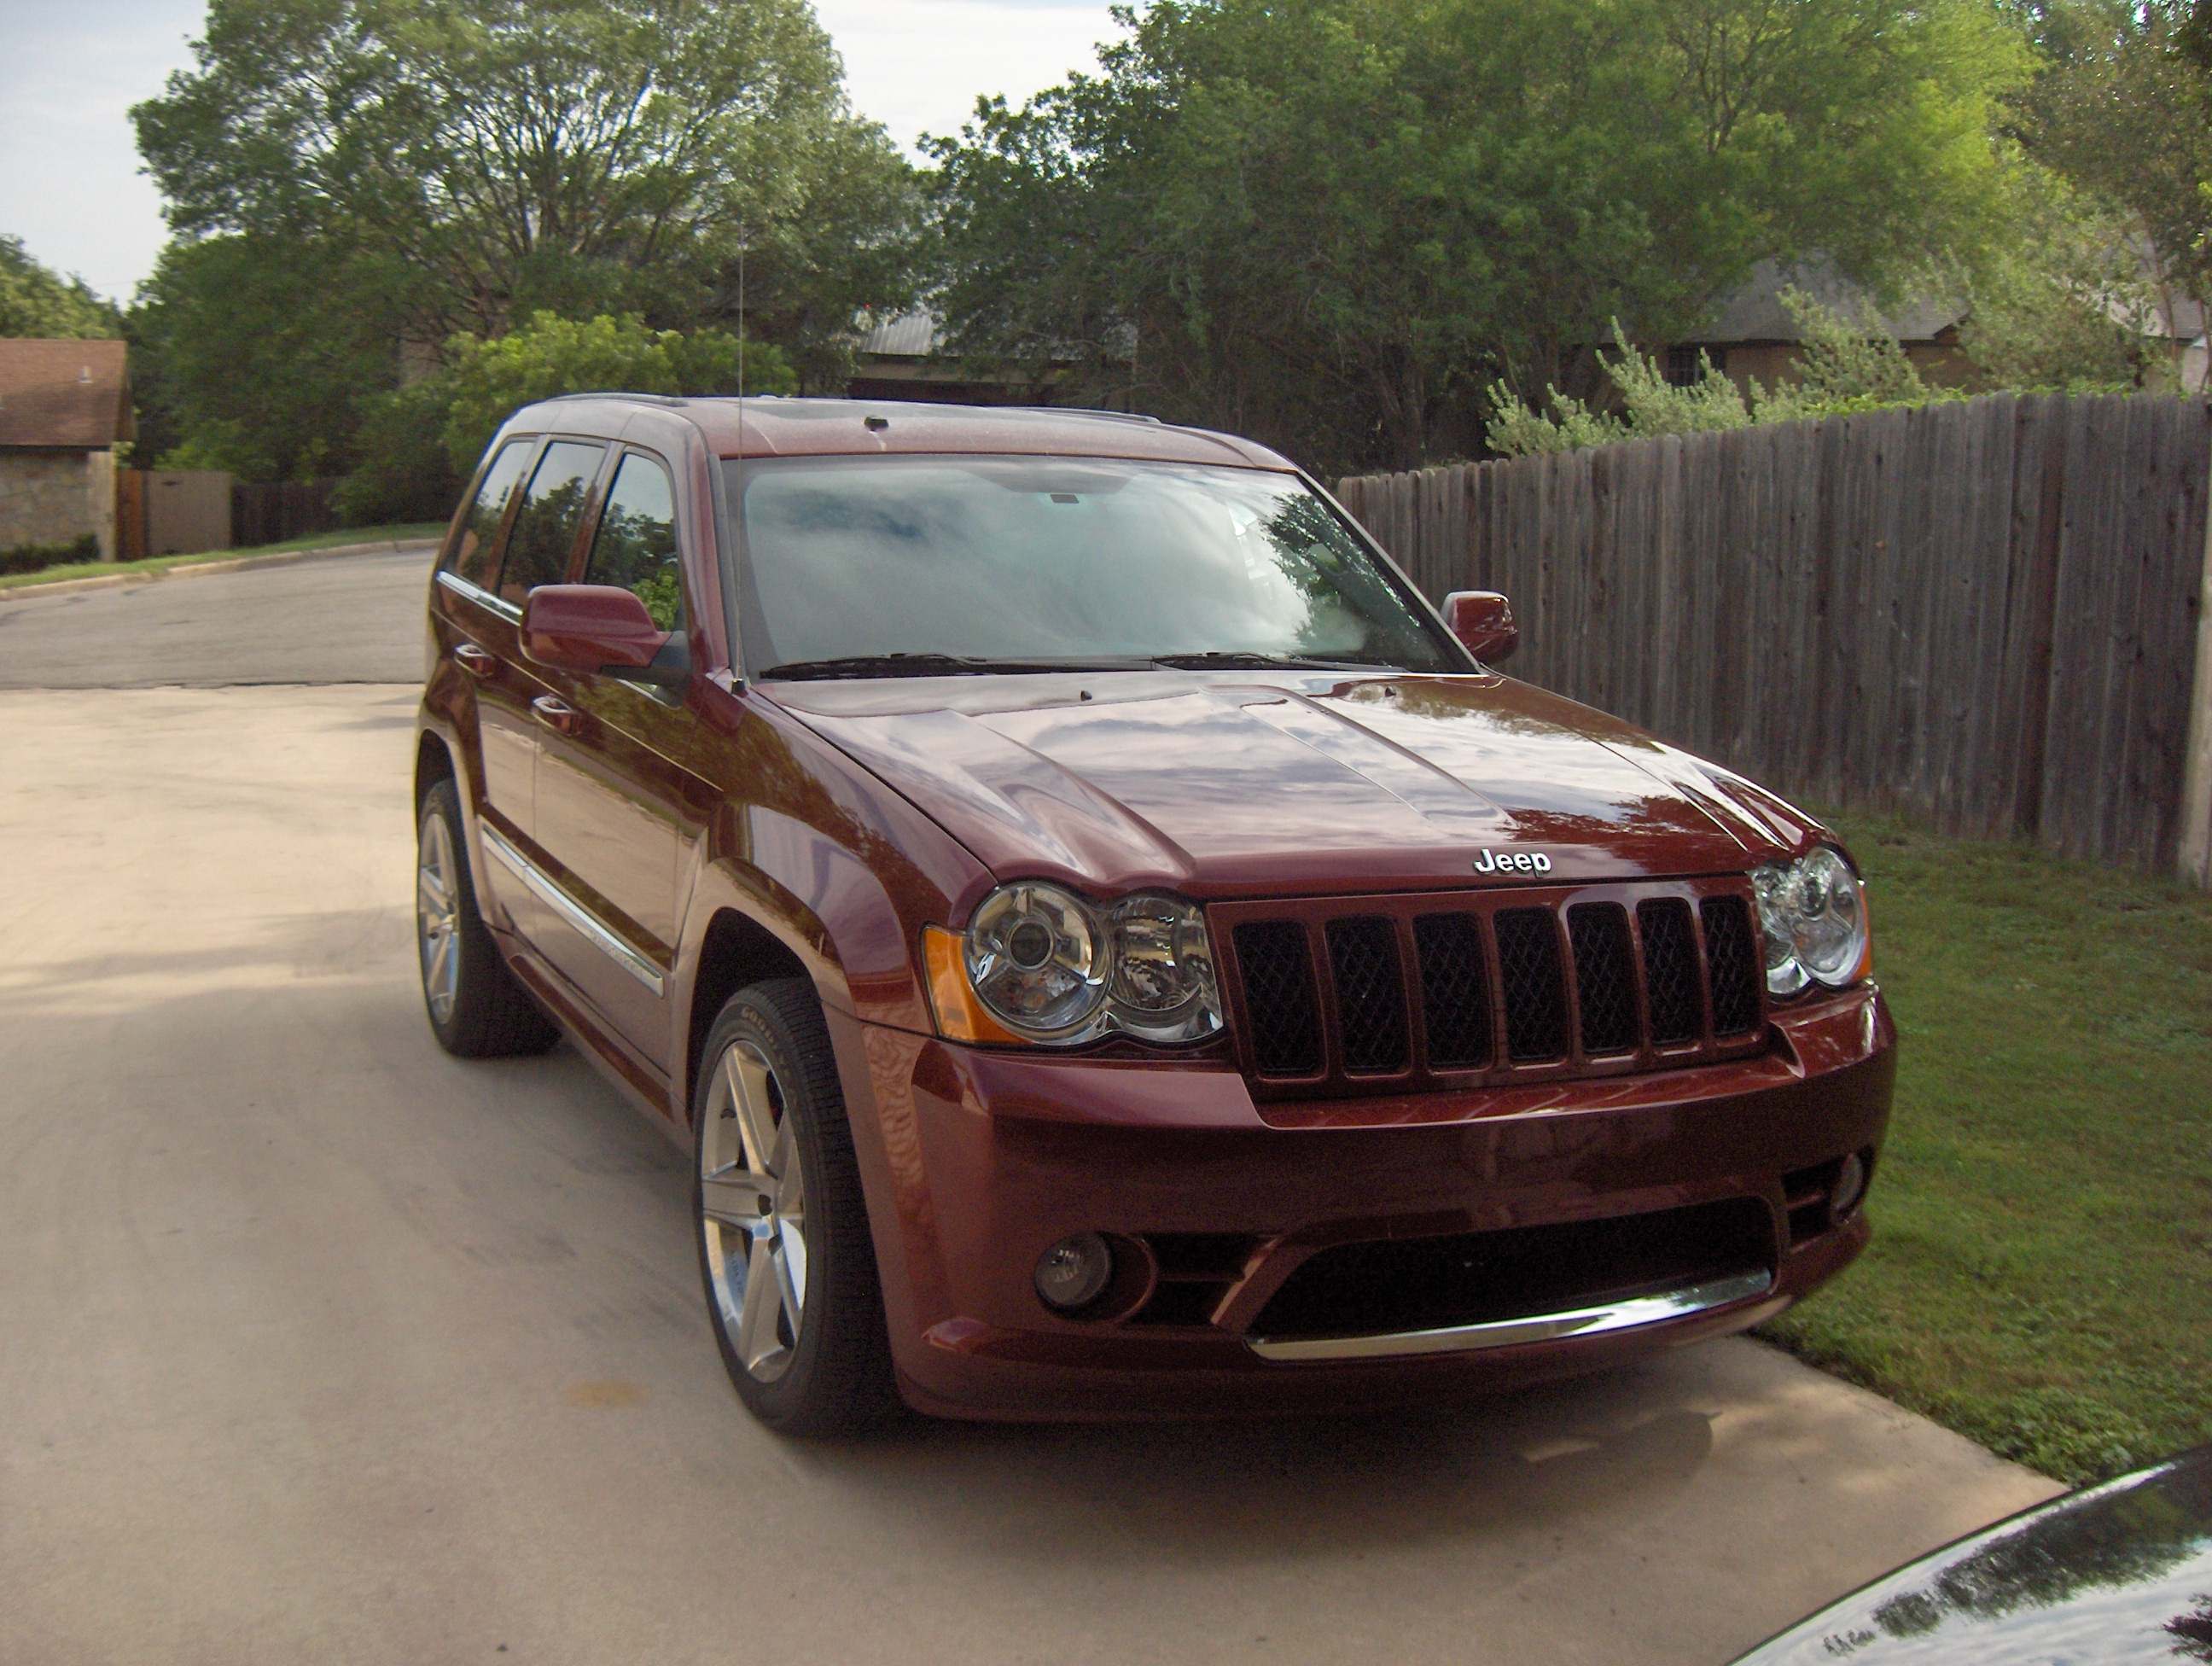 Jeep Grand Cherokee 4.7 2009 photo - 7